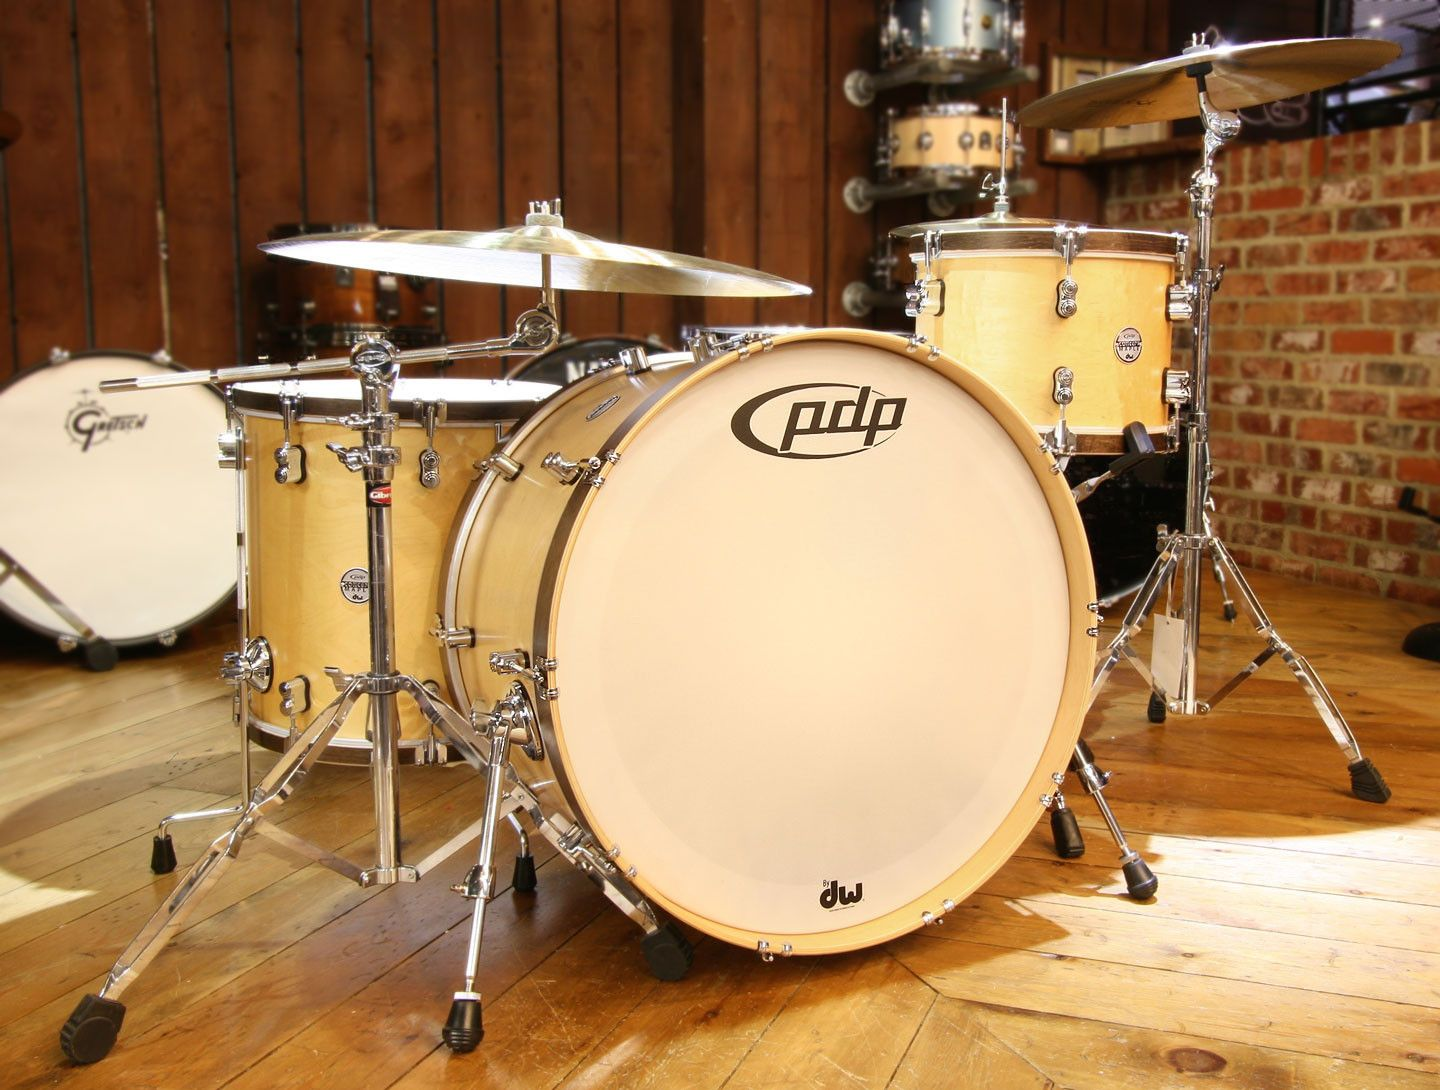 US $2,000.00 SJC drums (WHITE SATIN STAIN KIT) SNARE INCLUDED (4 ...